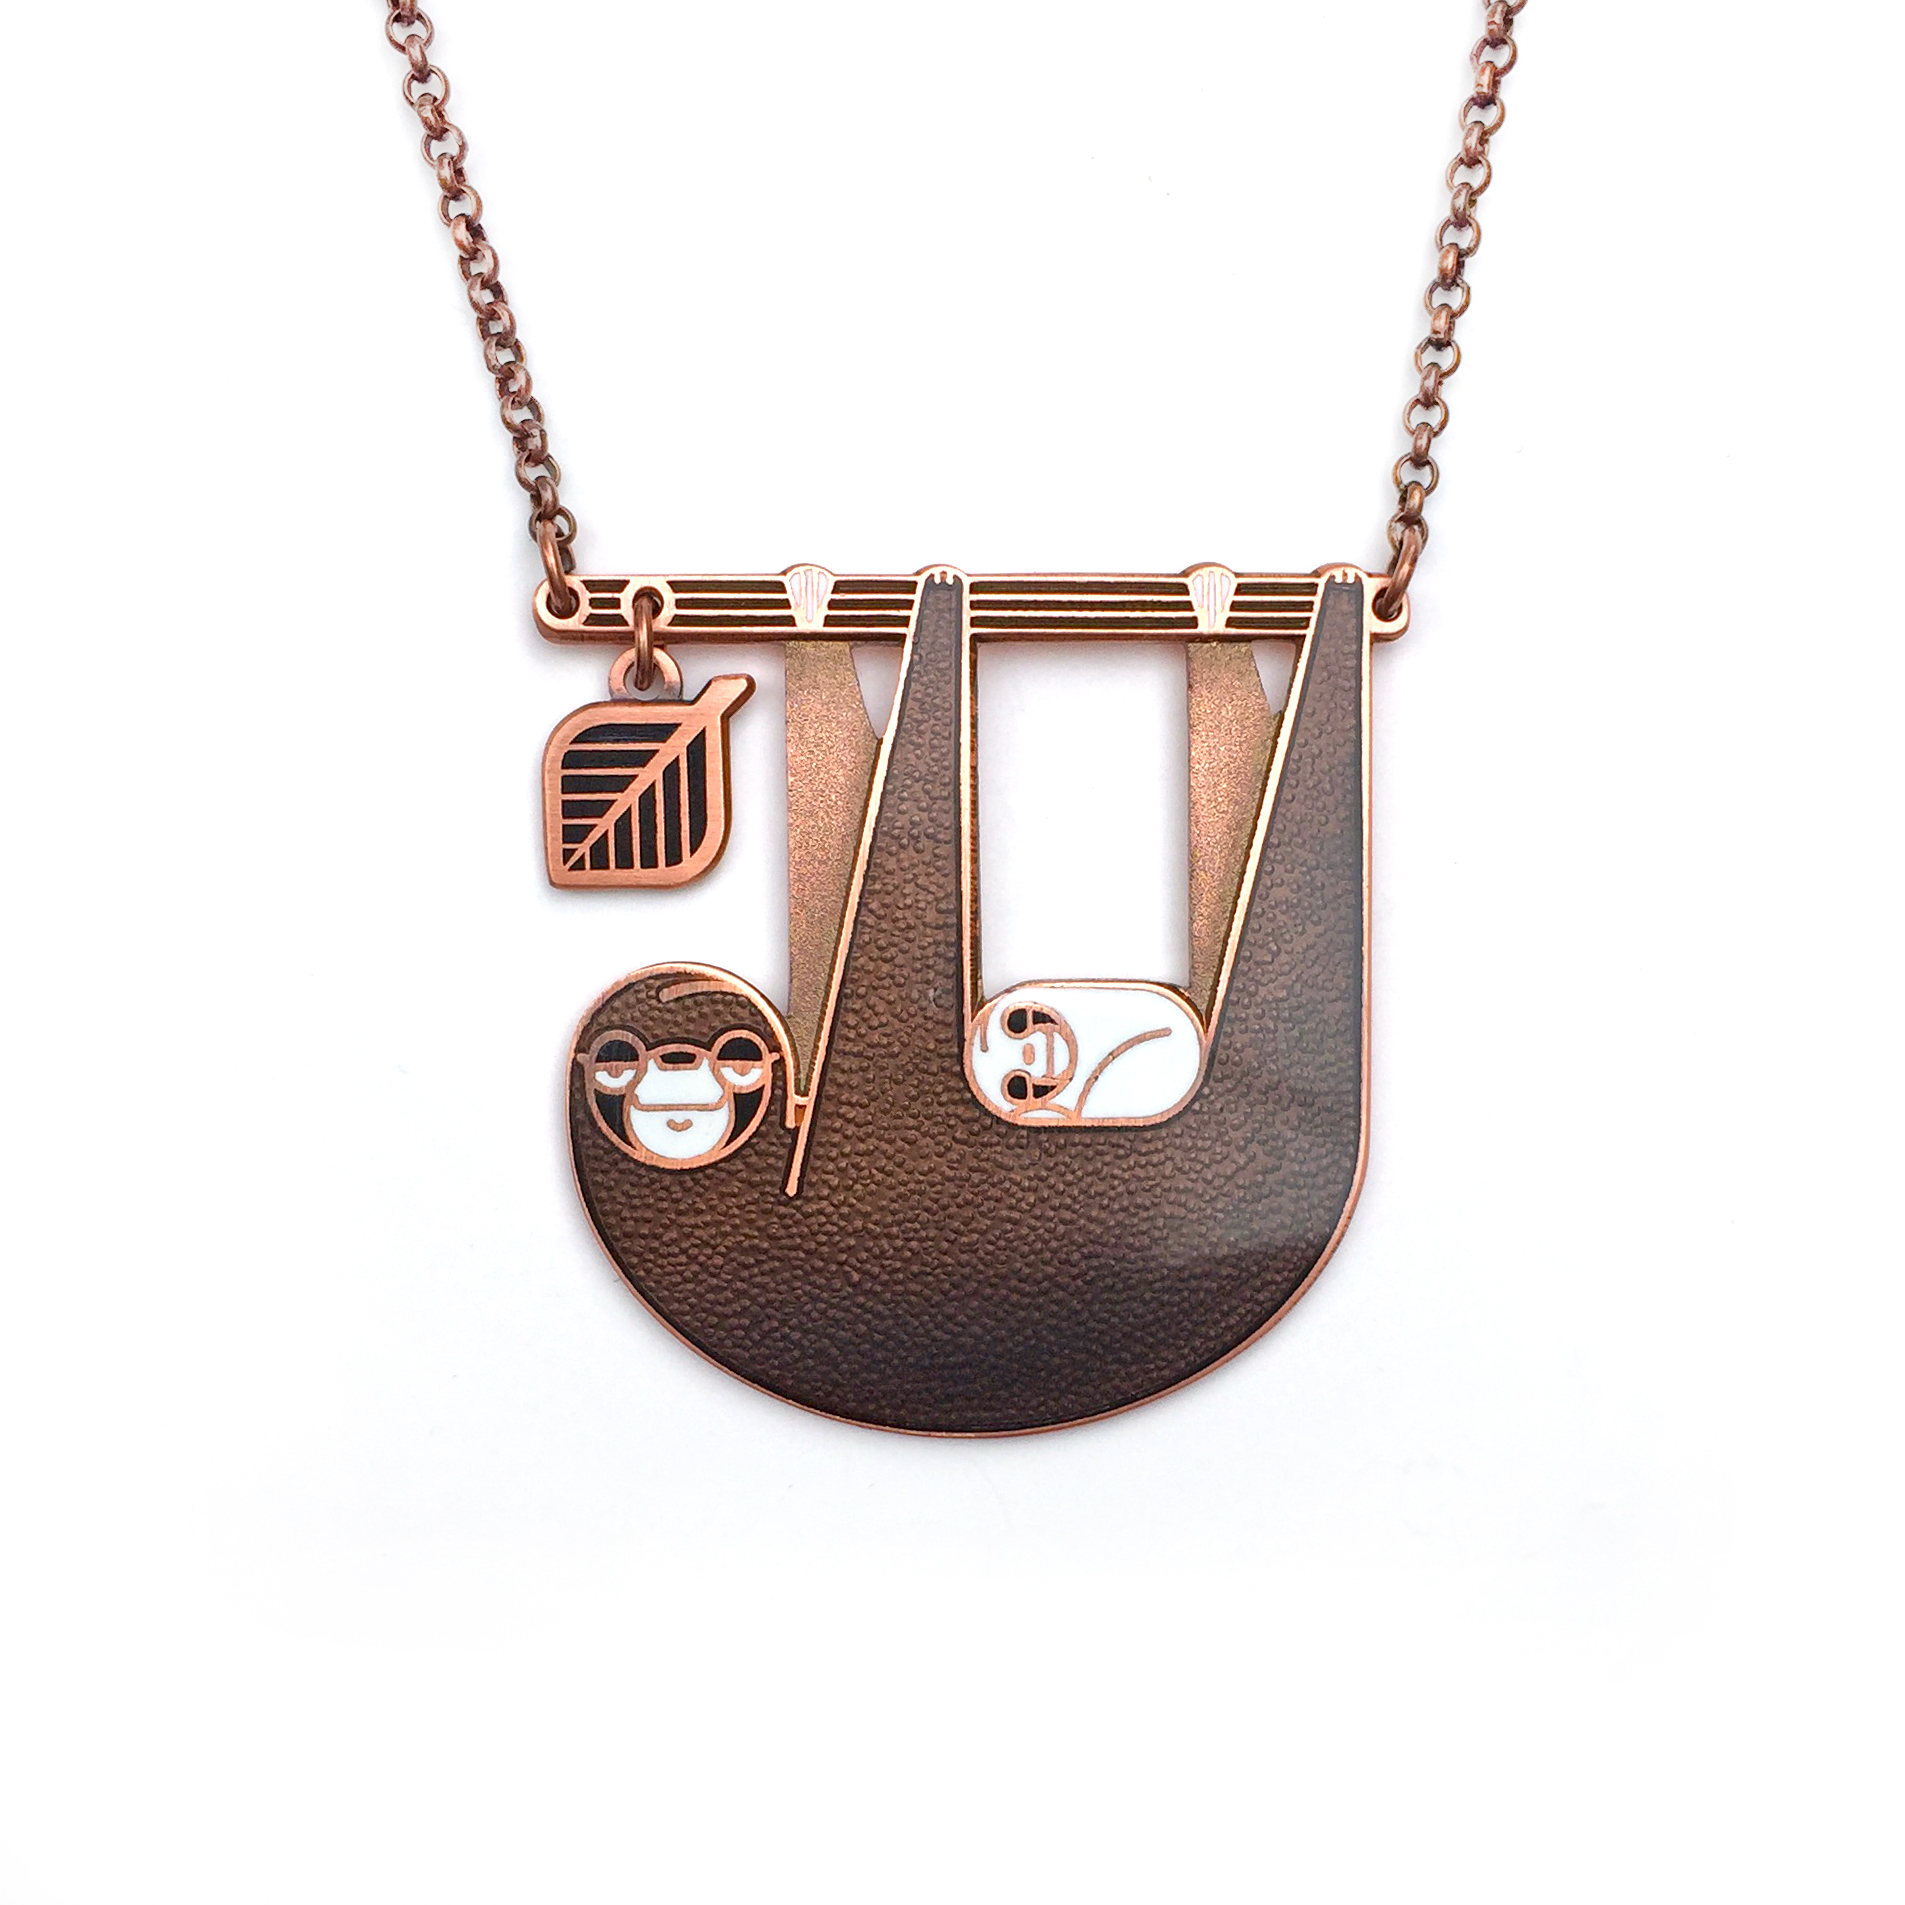 Sloth Necklace with dangling leaf